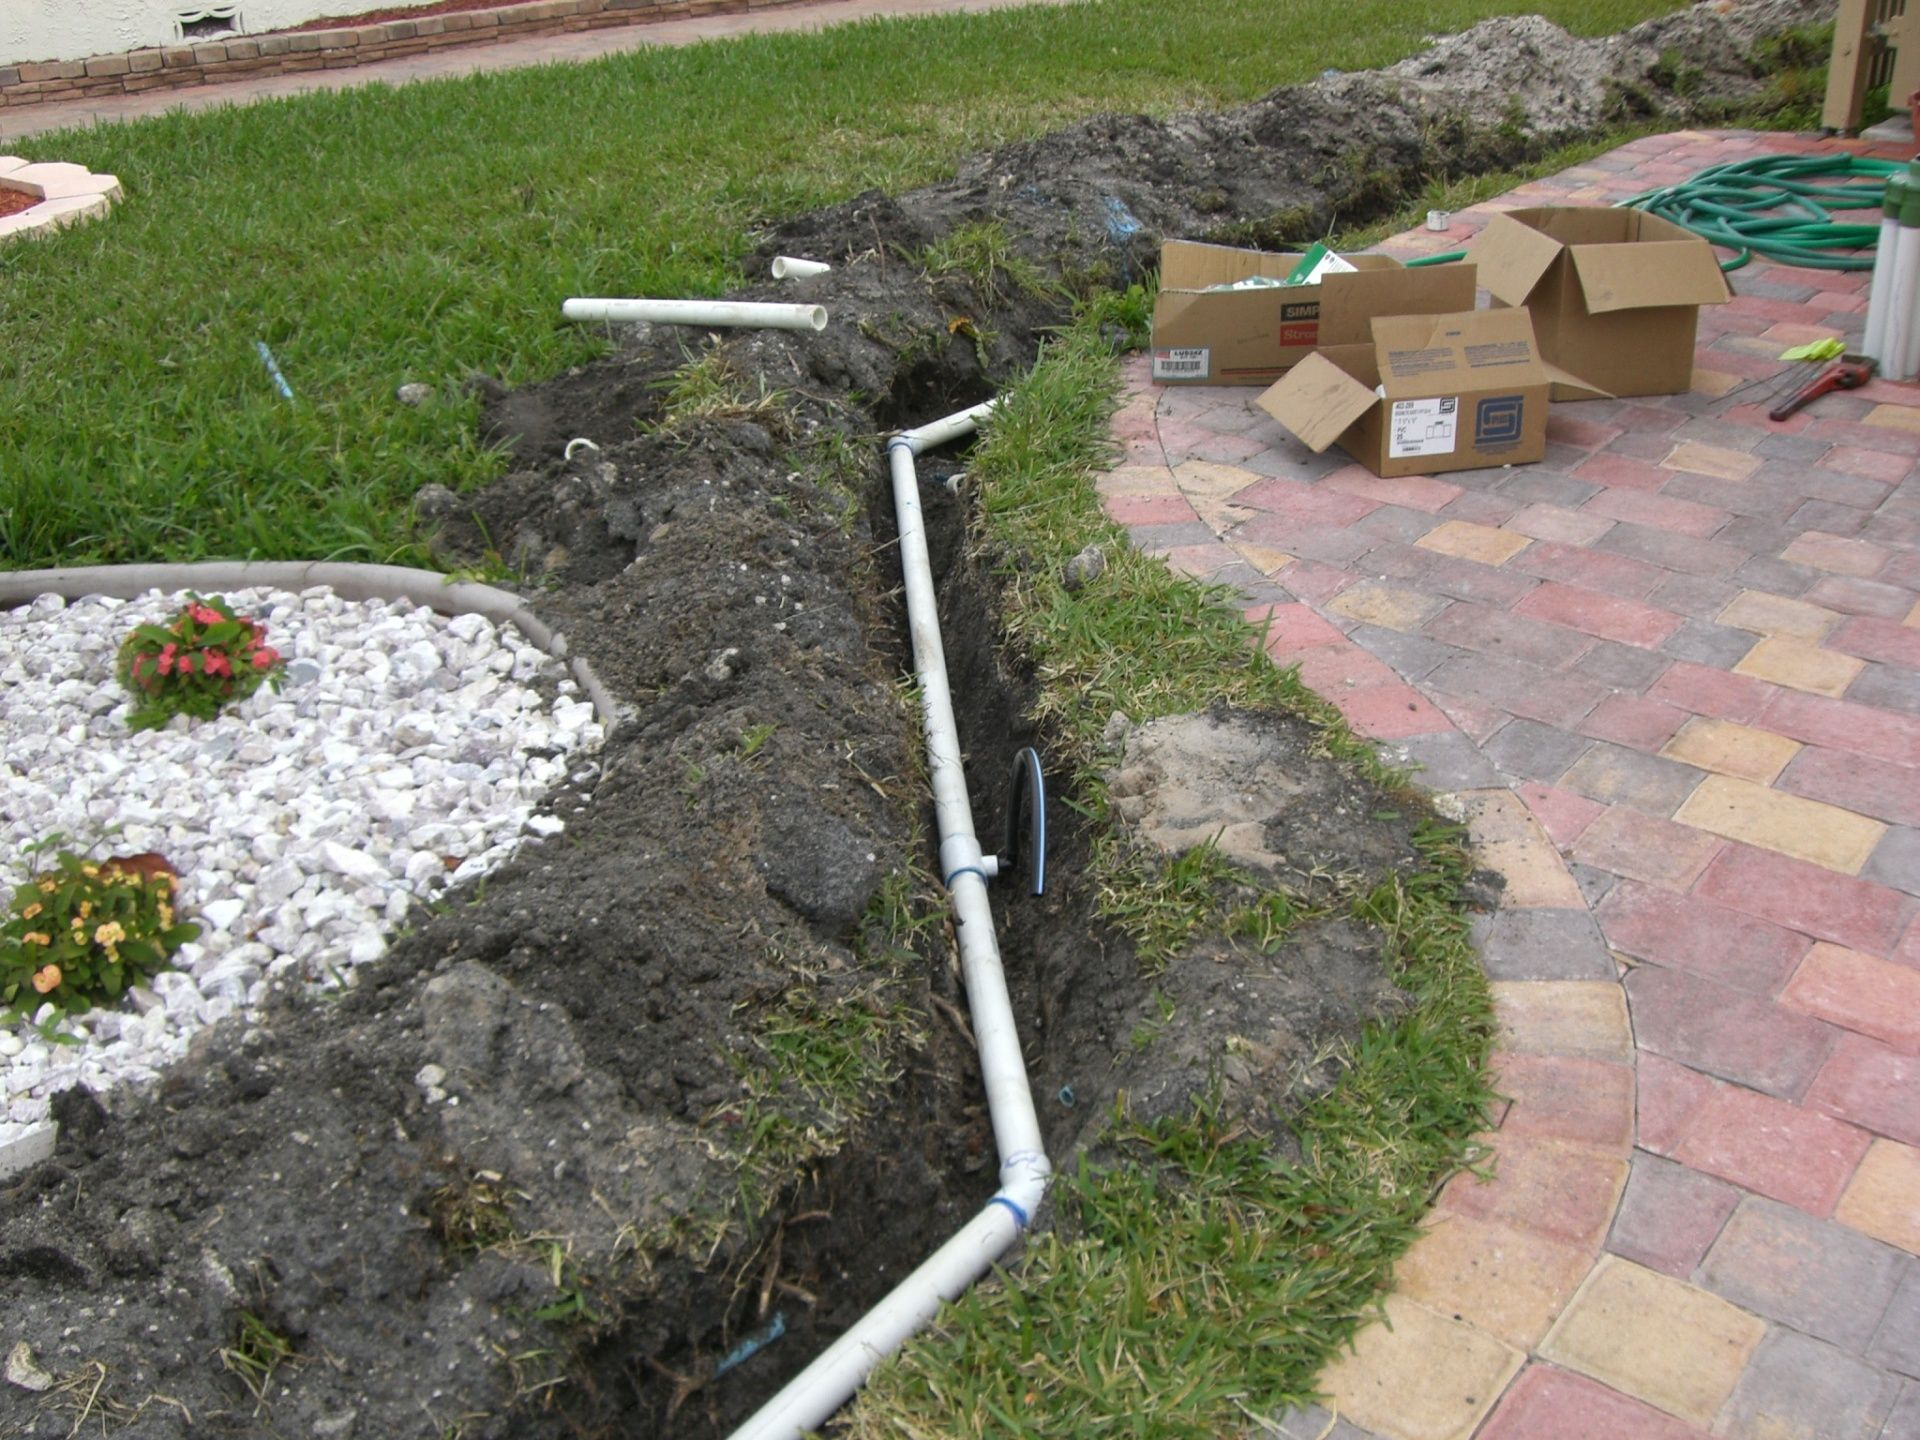 You May Need To Modify An Existing Sprinkler System Layout Sprinkler System Re Routes Are One Of The Ma Lawn Sprinkler System Sprinkler System Lawn Sprinklers